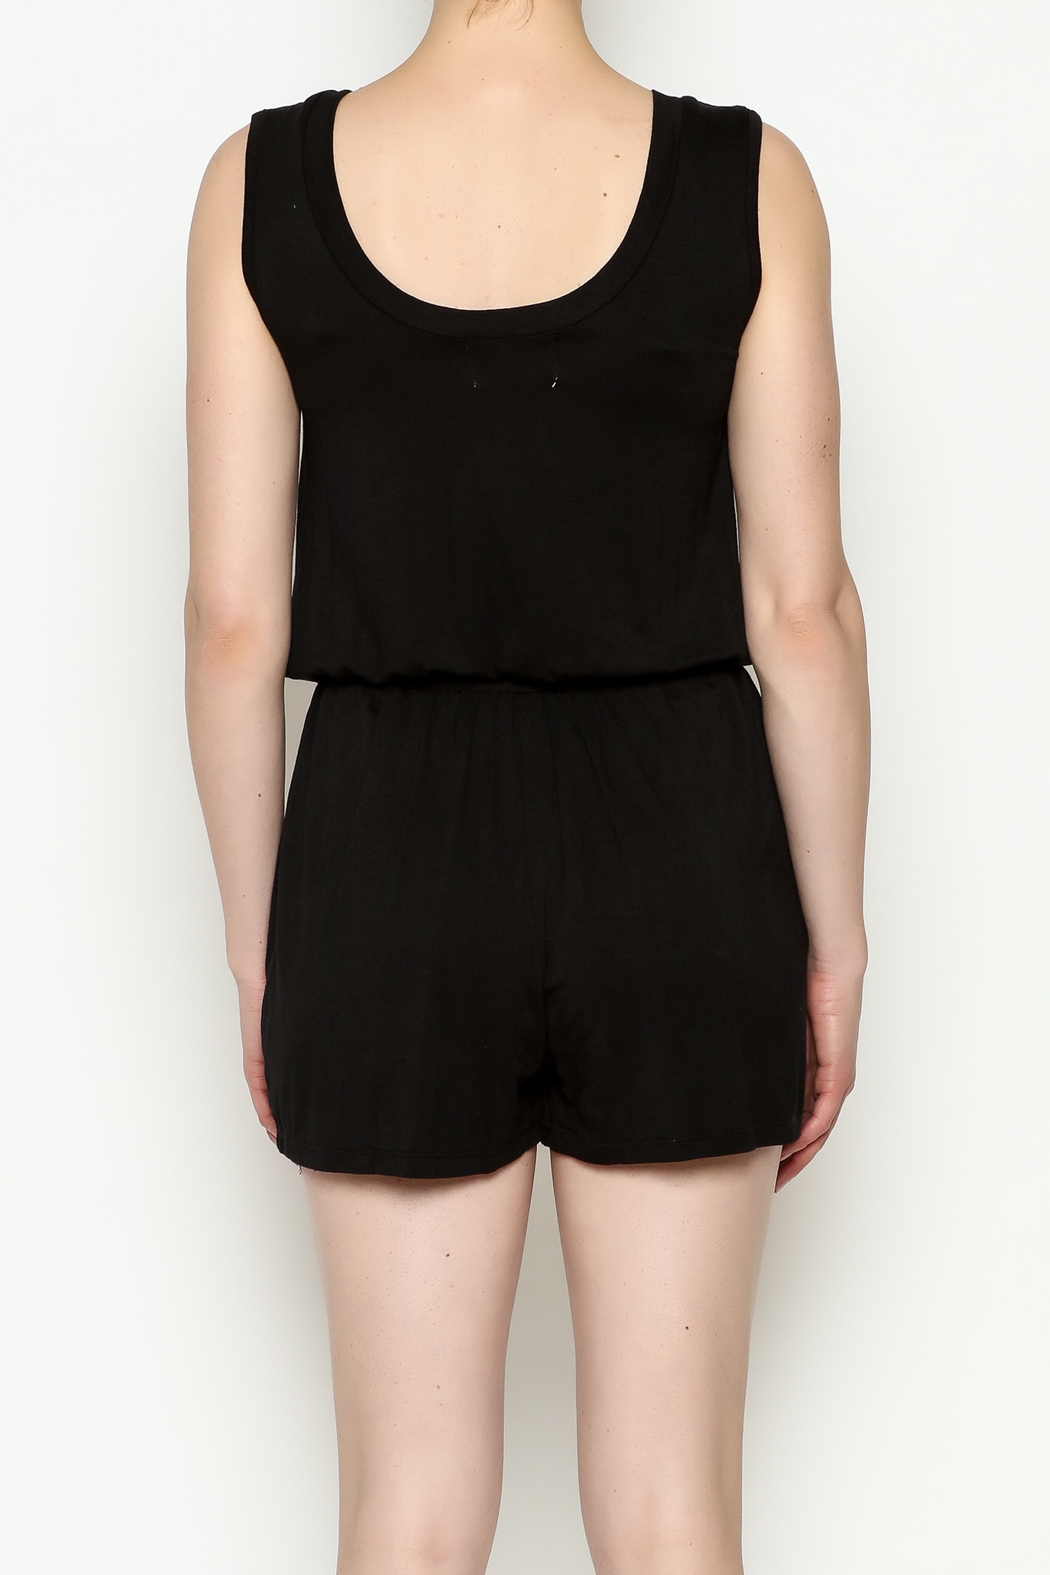 Olive & Oak Black Sleeveless Romper - Back Cropped Image